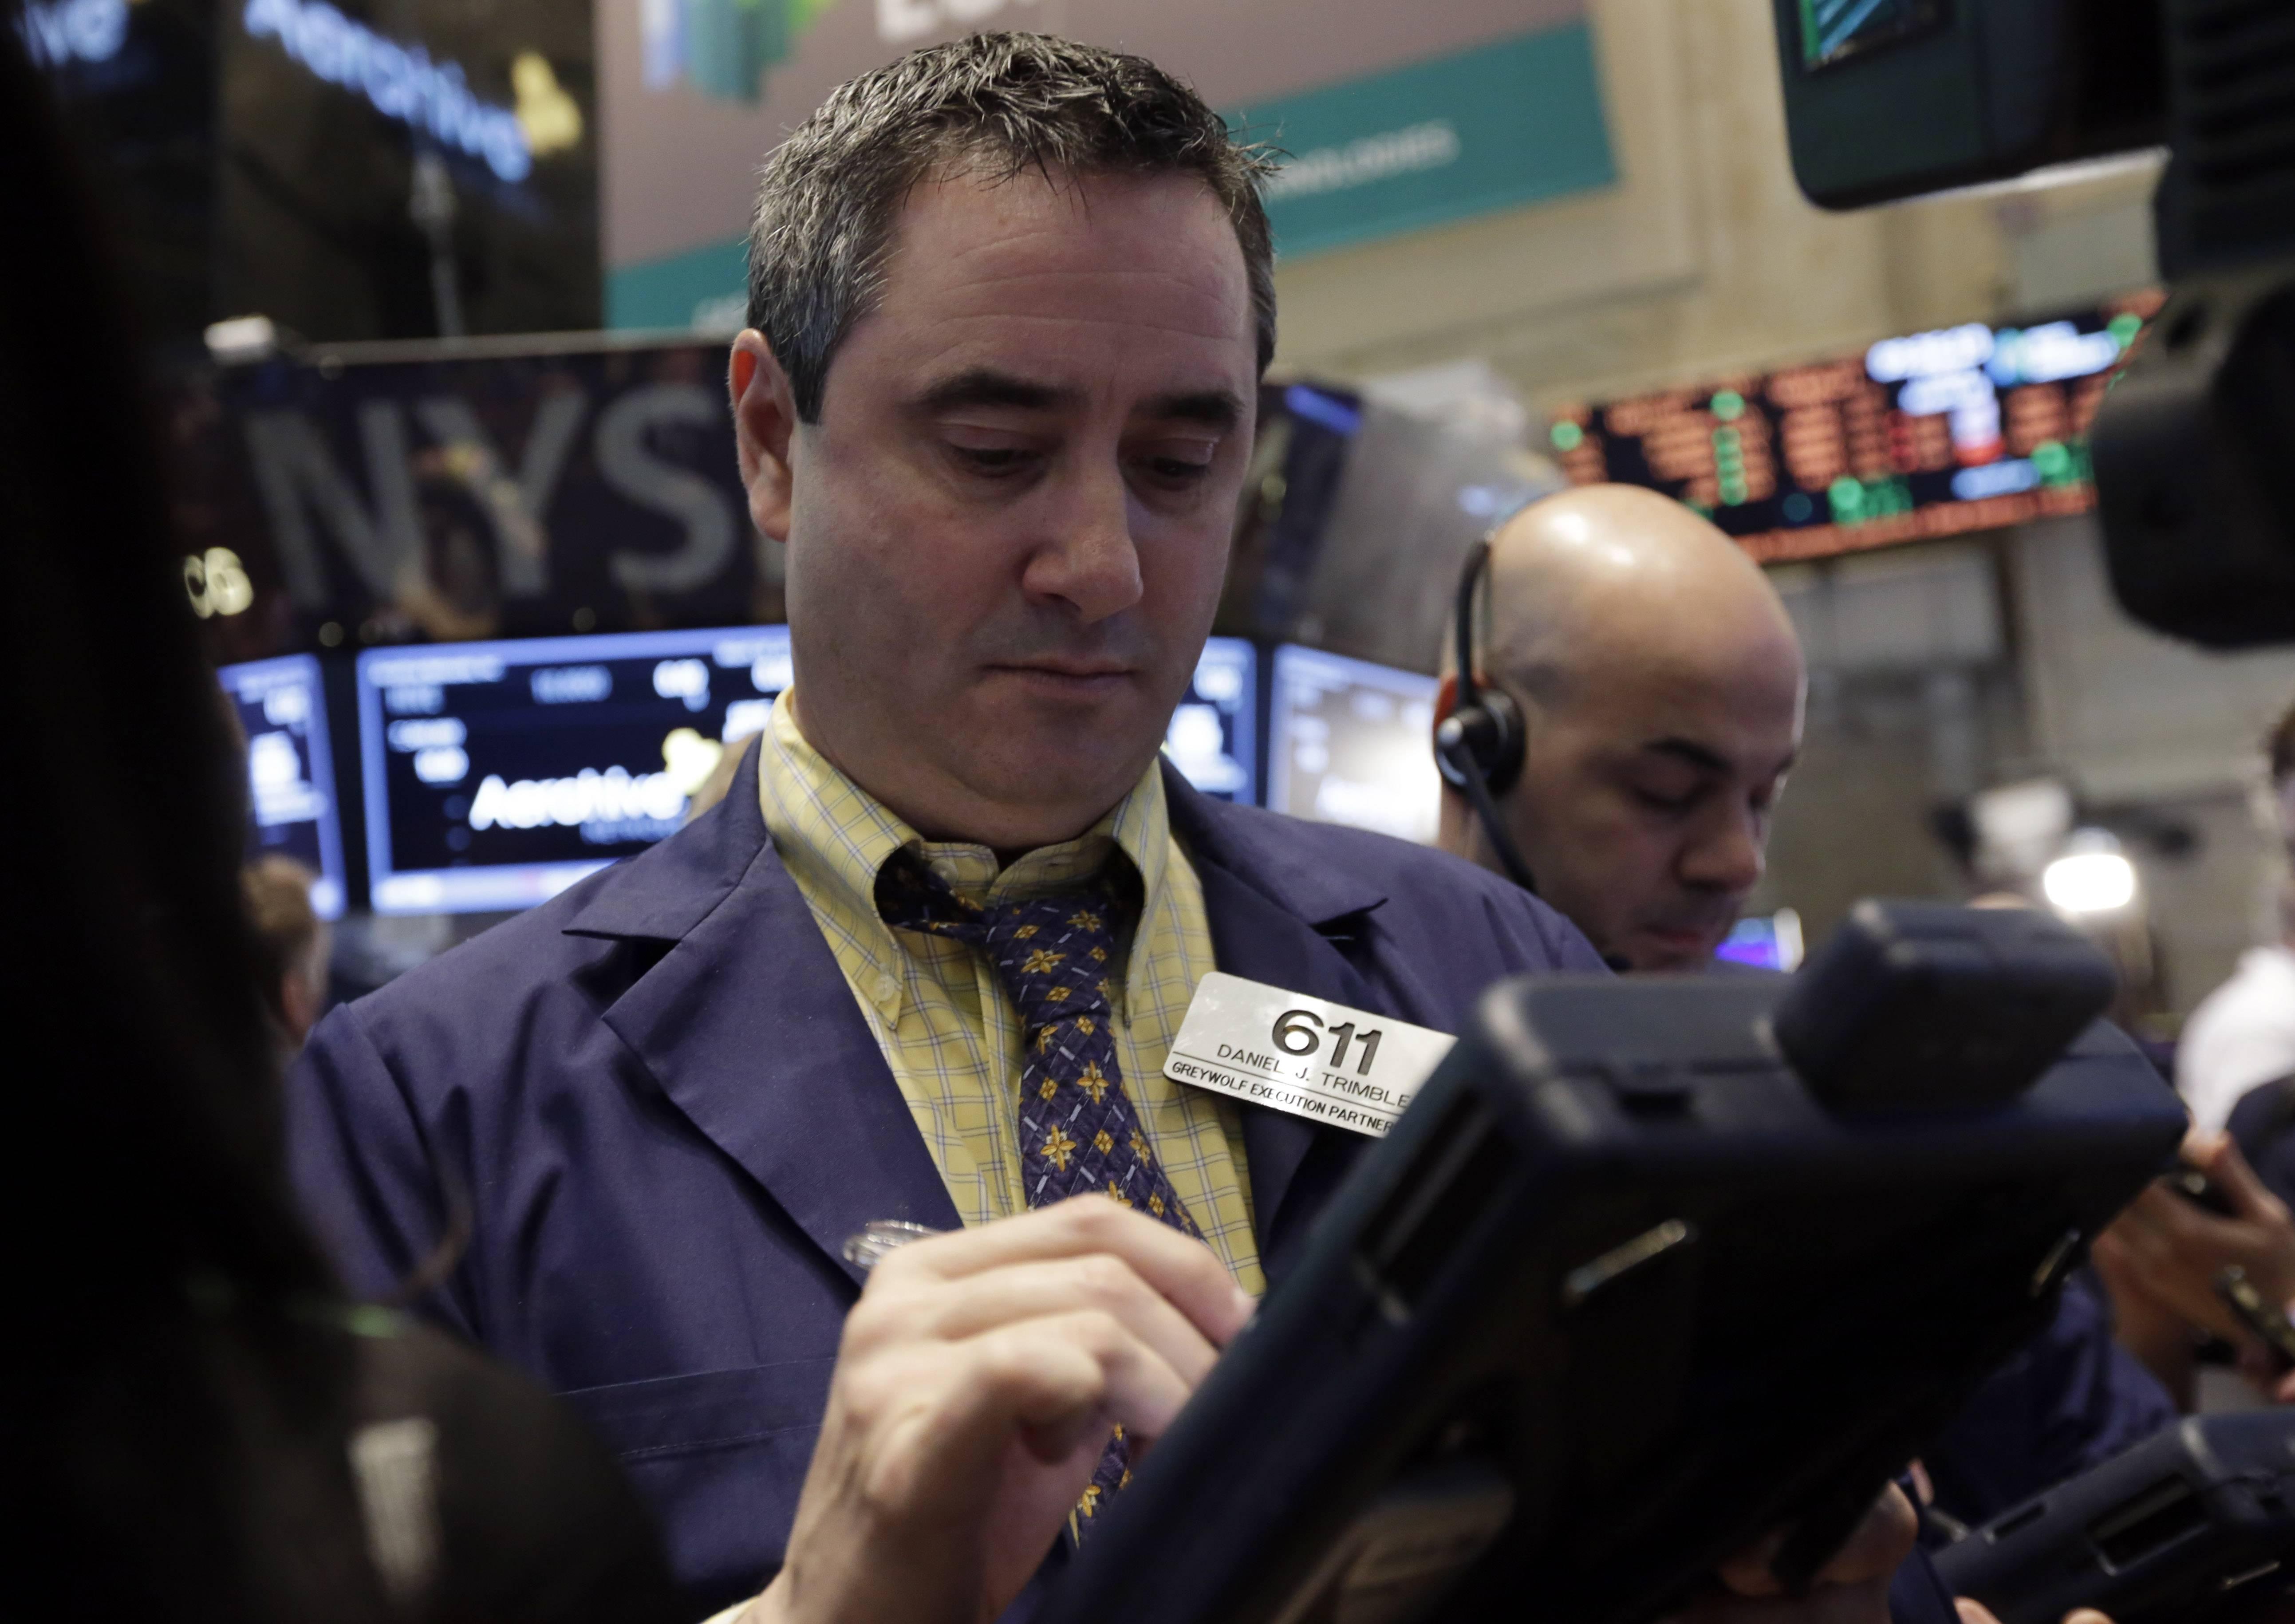 U.S. stocks rose Tuesday, as consumer and technology shares pushed the Standard & Poor's 500 Index to an all-time high, after an increase in a manufacturing index boosted optimism the economy withstood severe winter weather.